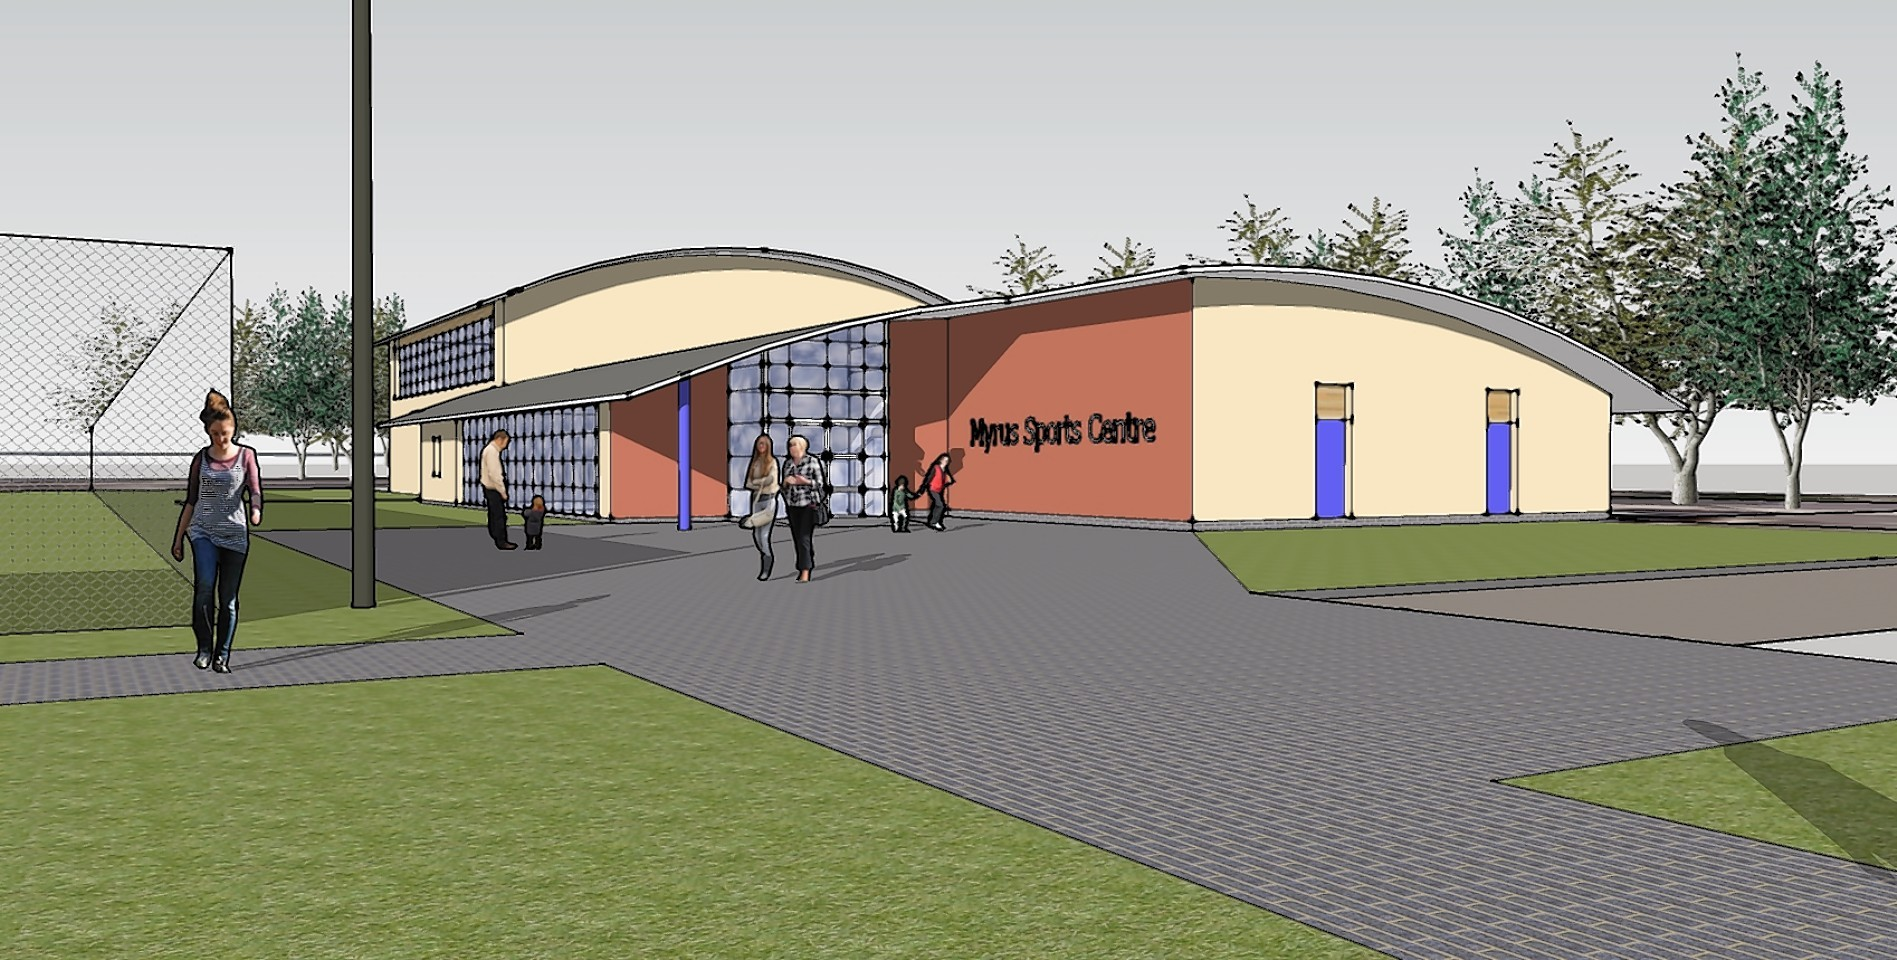 Artist impression of the Macduff centre